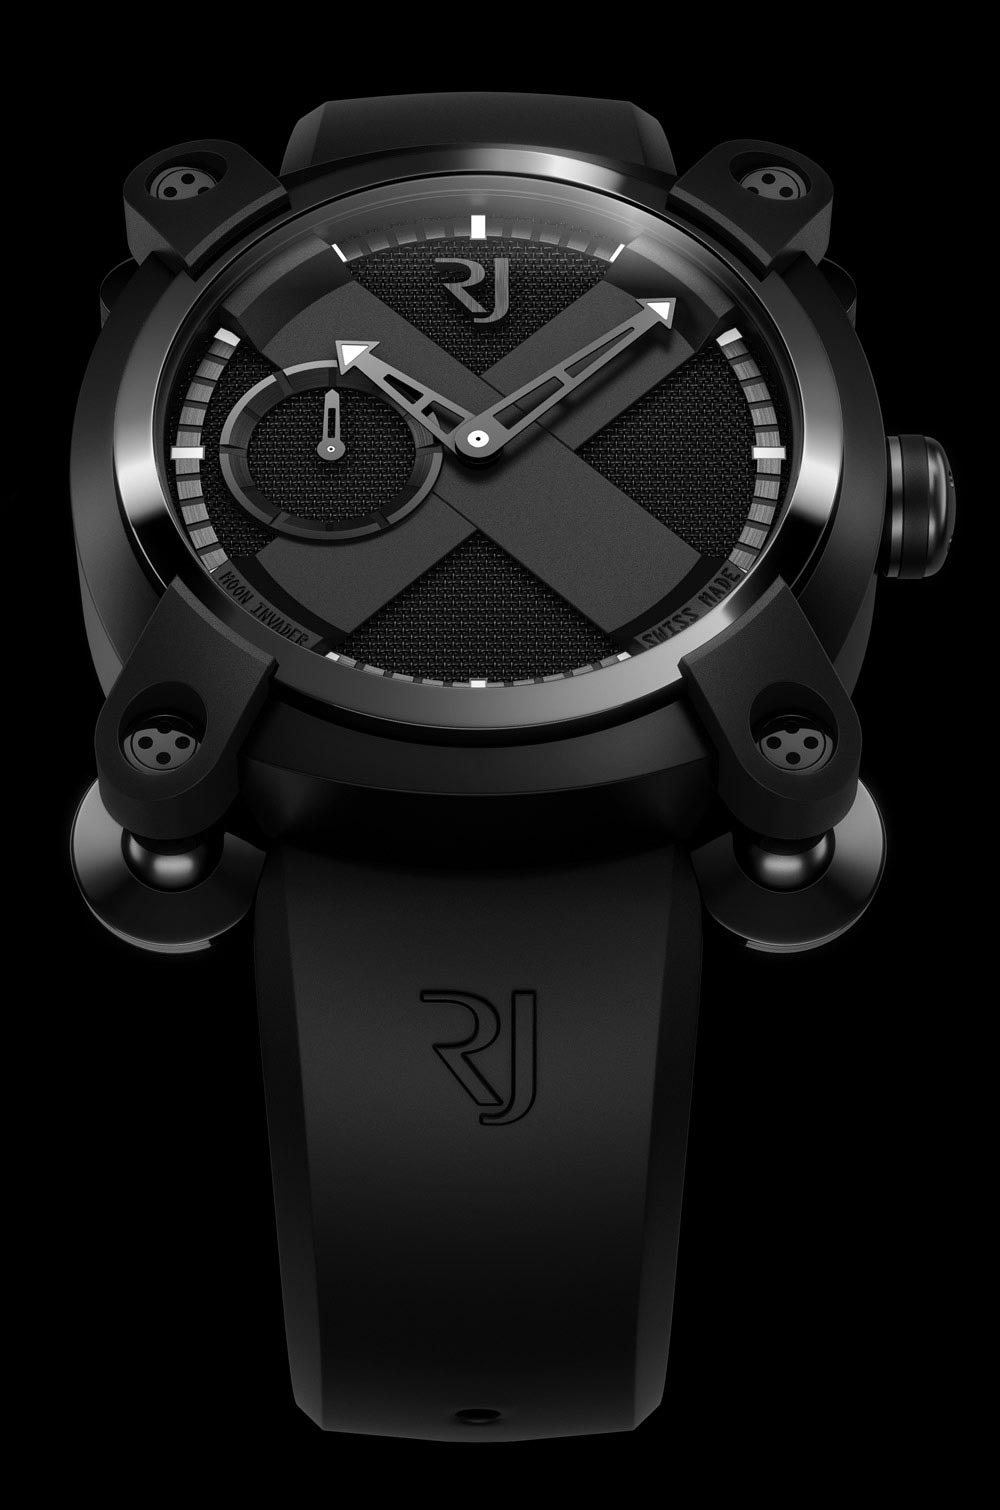 Romain Jerome Moon Invader Watch Collection Made From Spare Parts from Apollo 11